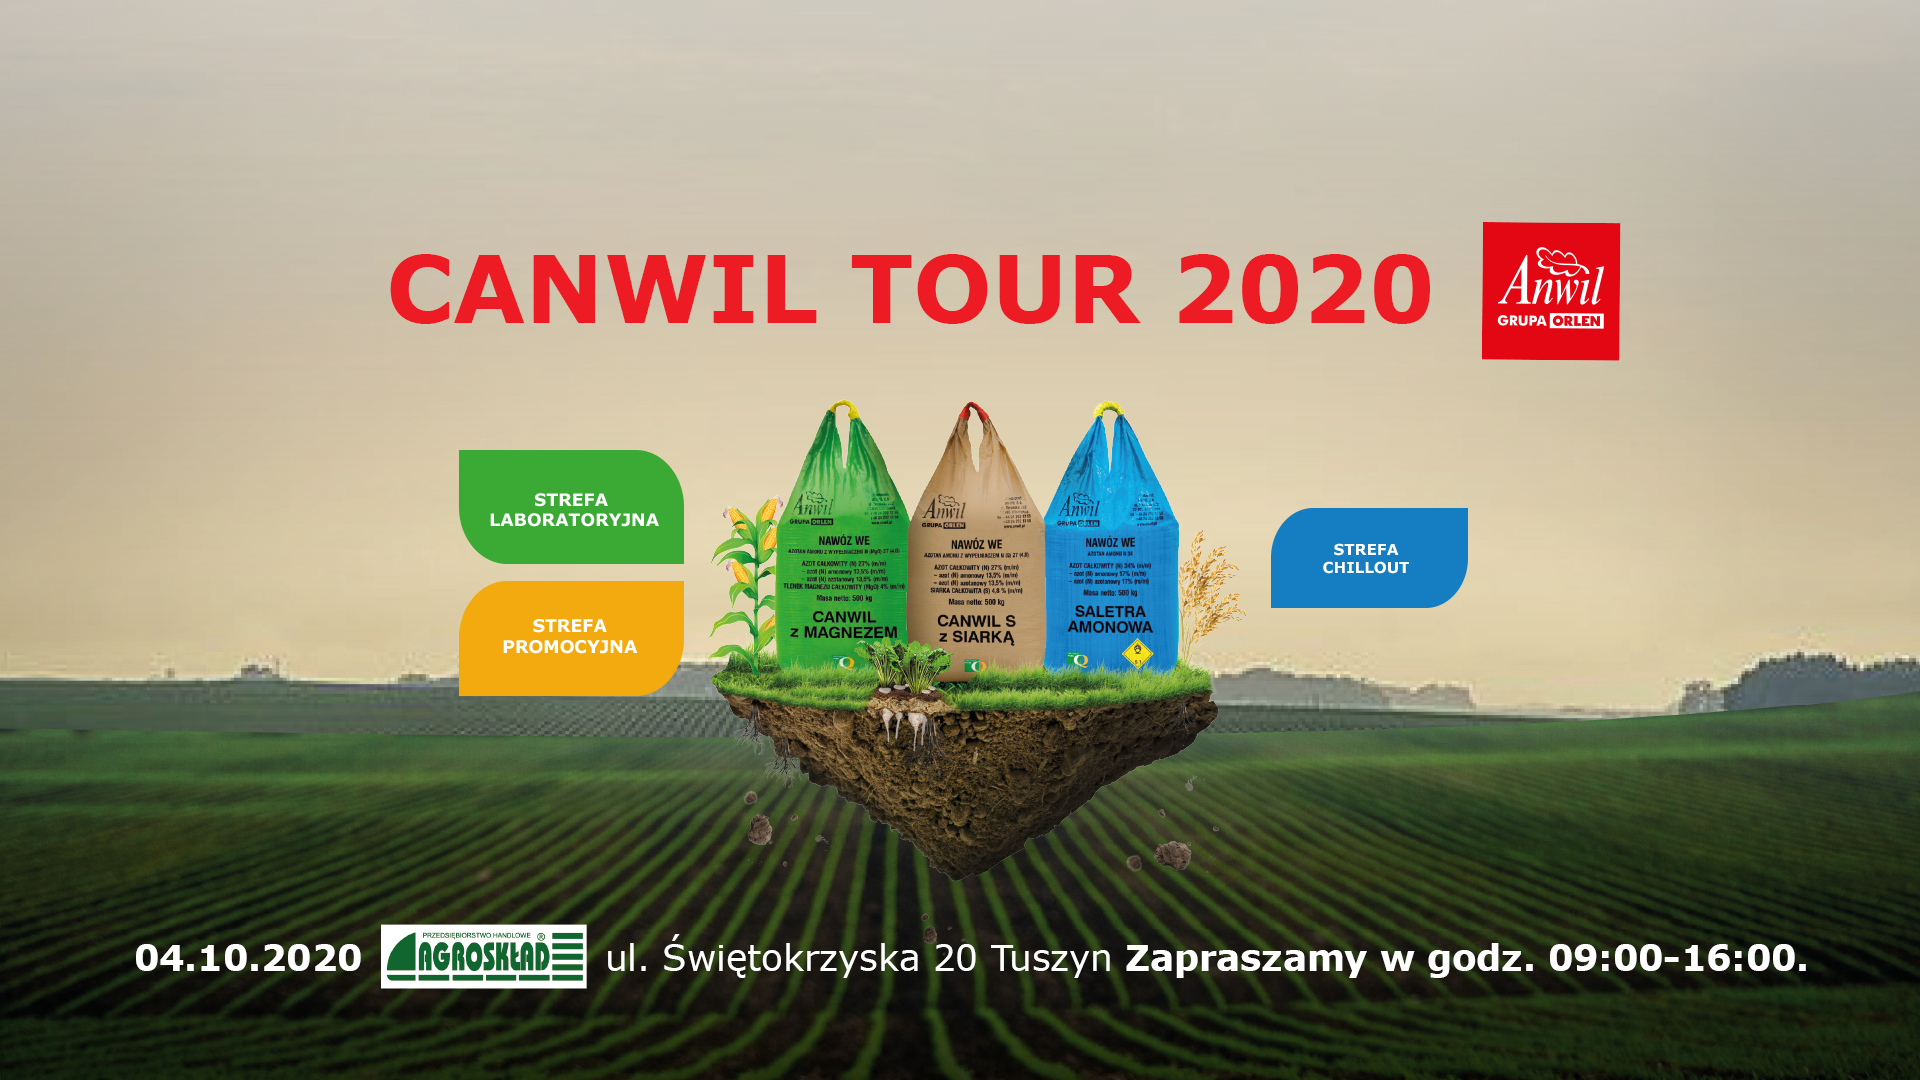 Canwil Tour 2020